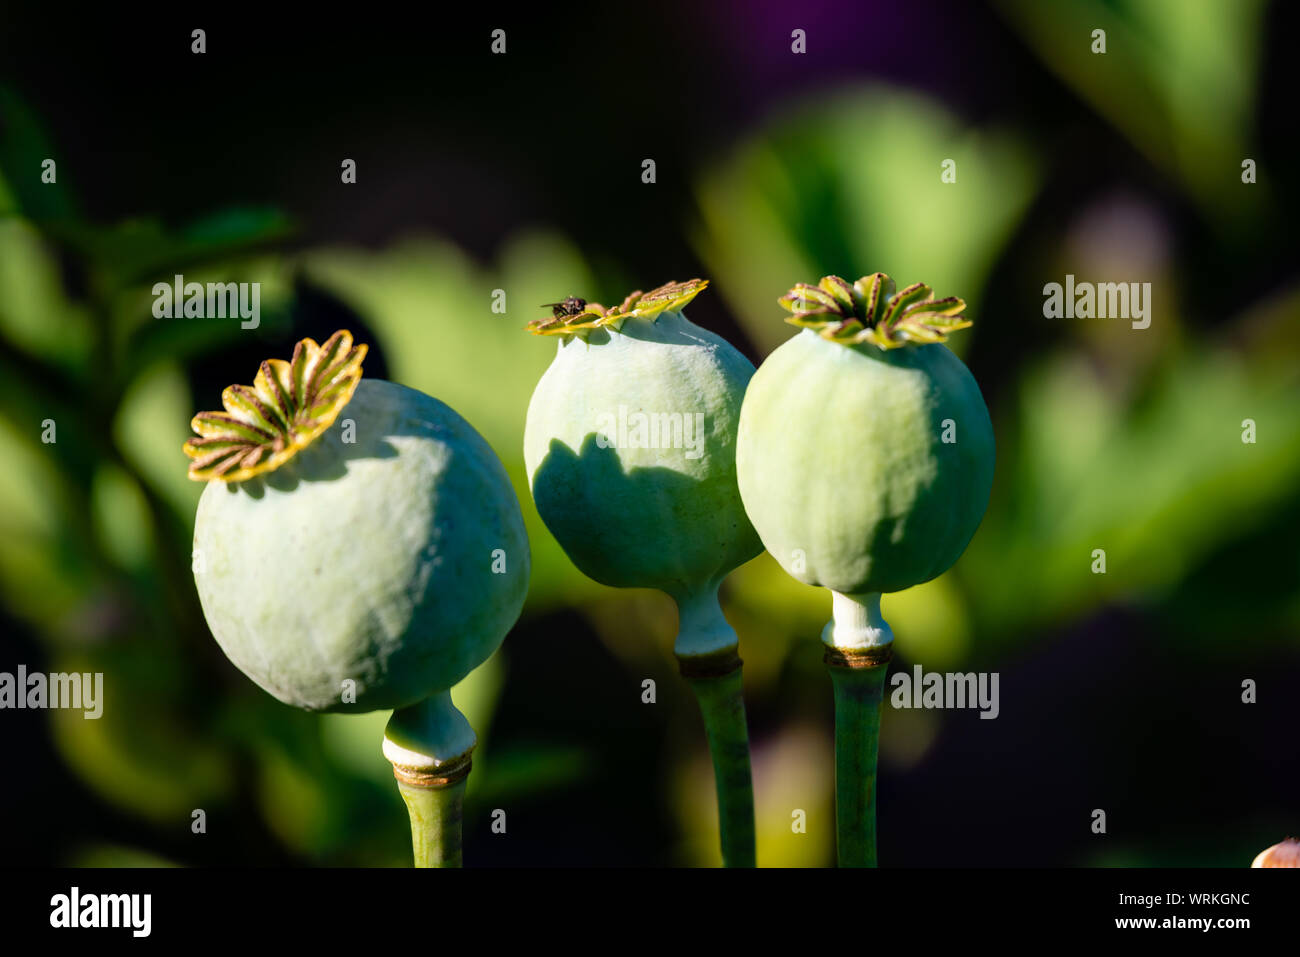 Poppy Seed Pod And Flower Close Up Stock Photo 272722840 Alamy